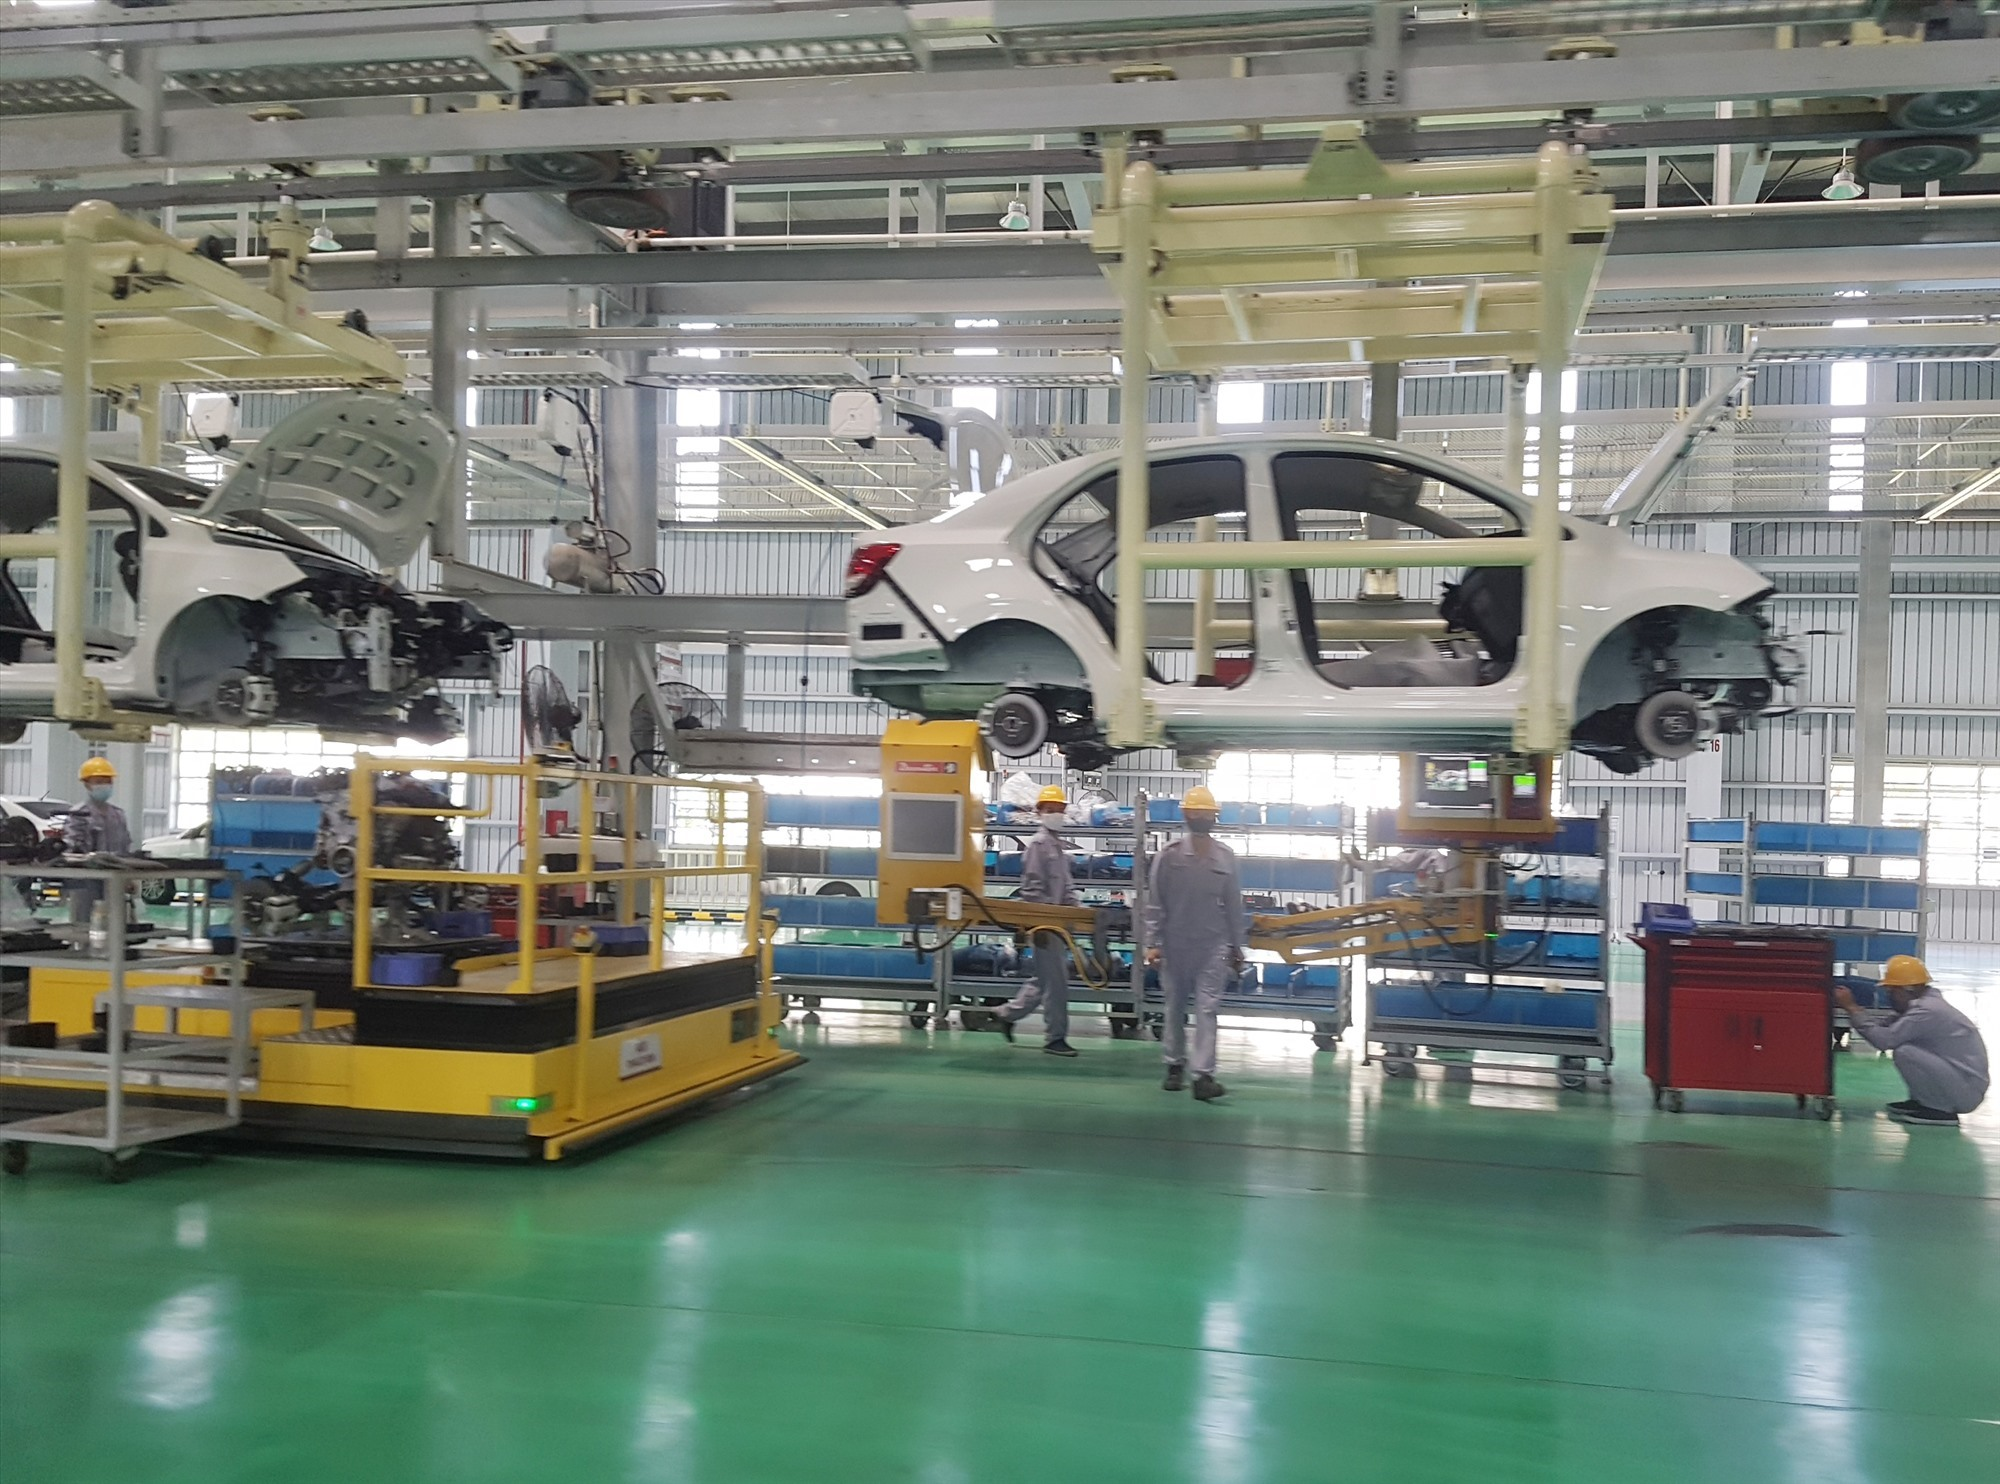 Automotive manufacturing factory in Chu Lai Open Economic Zone, Quang Nam province